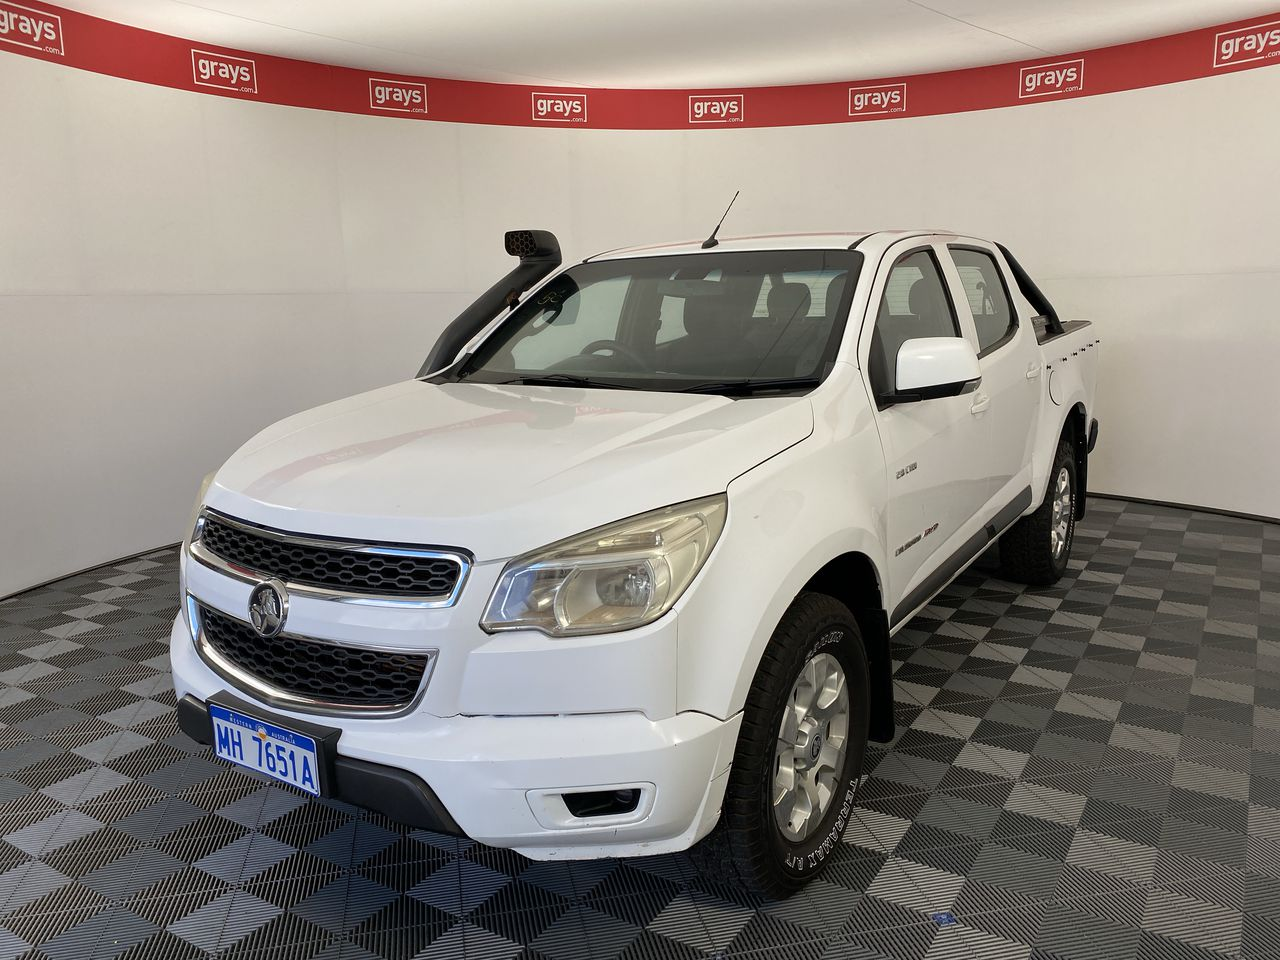 2013 Holden Colorado 4X4 LX RG Turbo Diesel Automatic Crew Cab Chassis